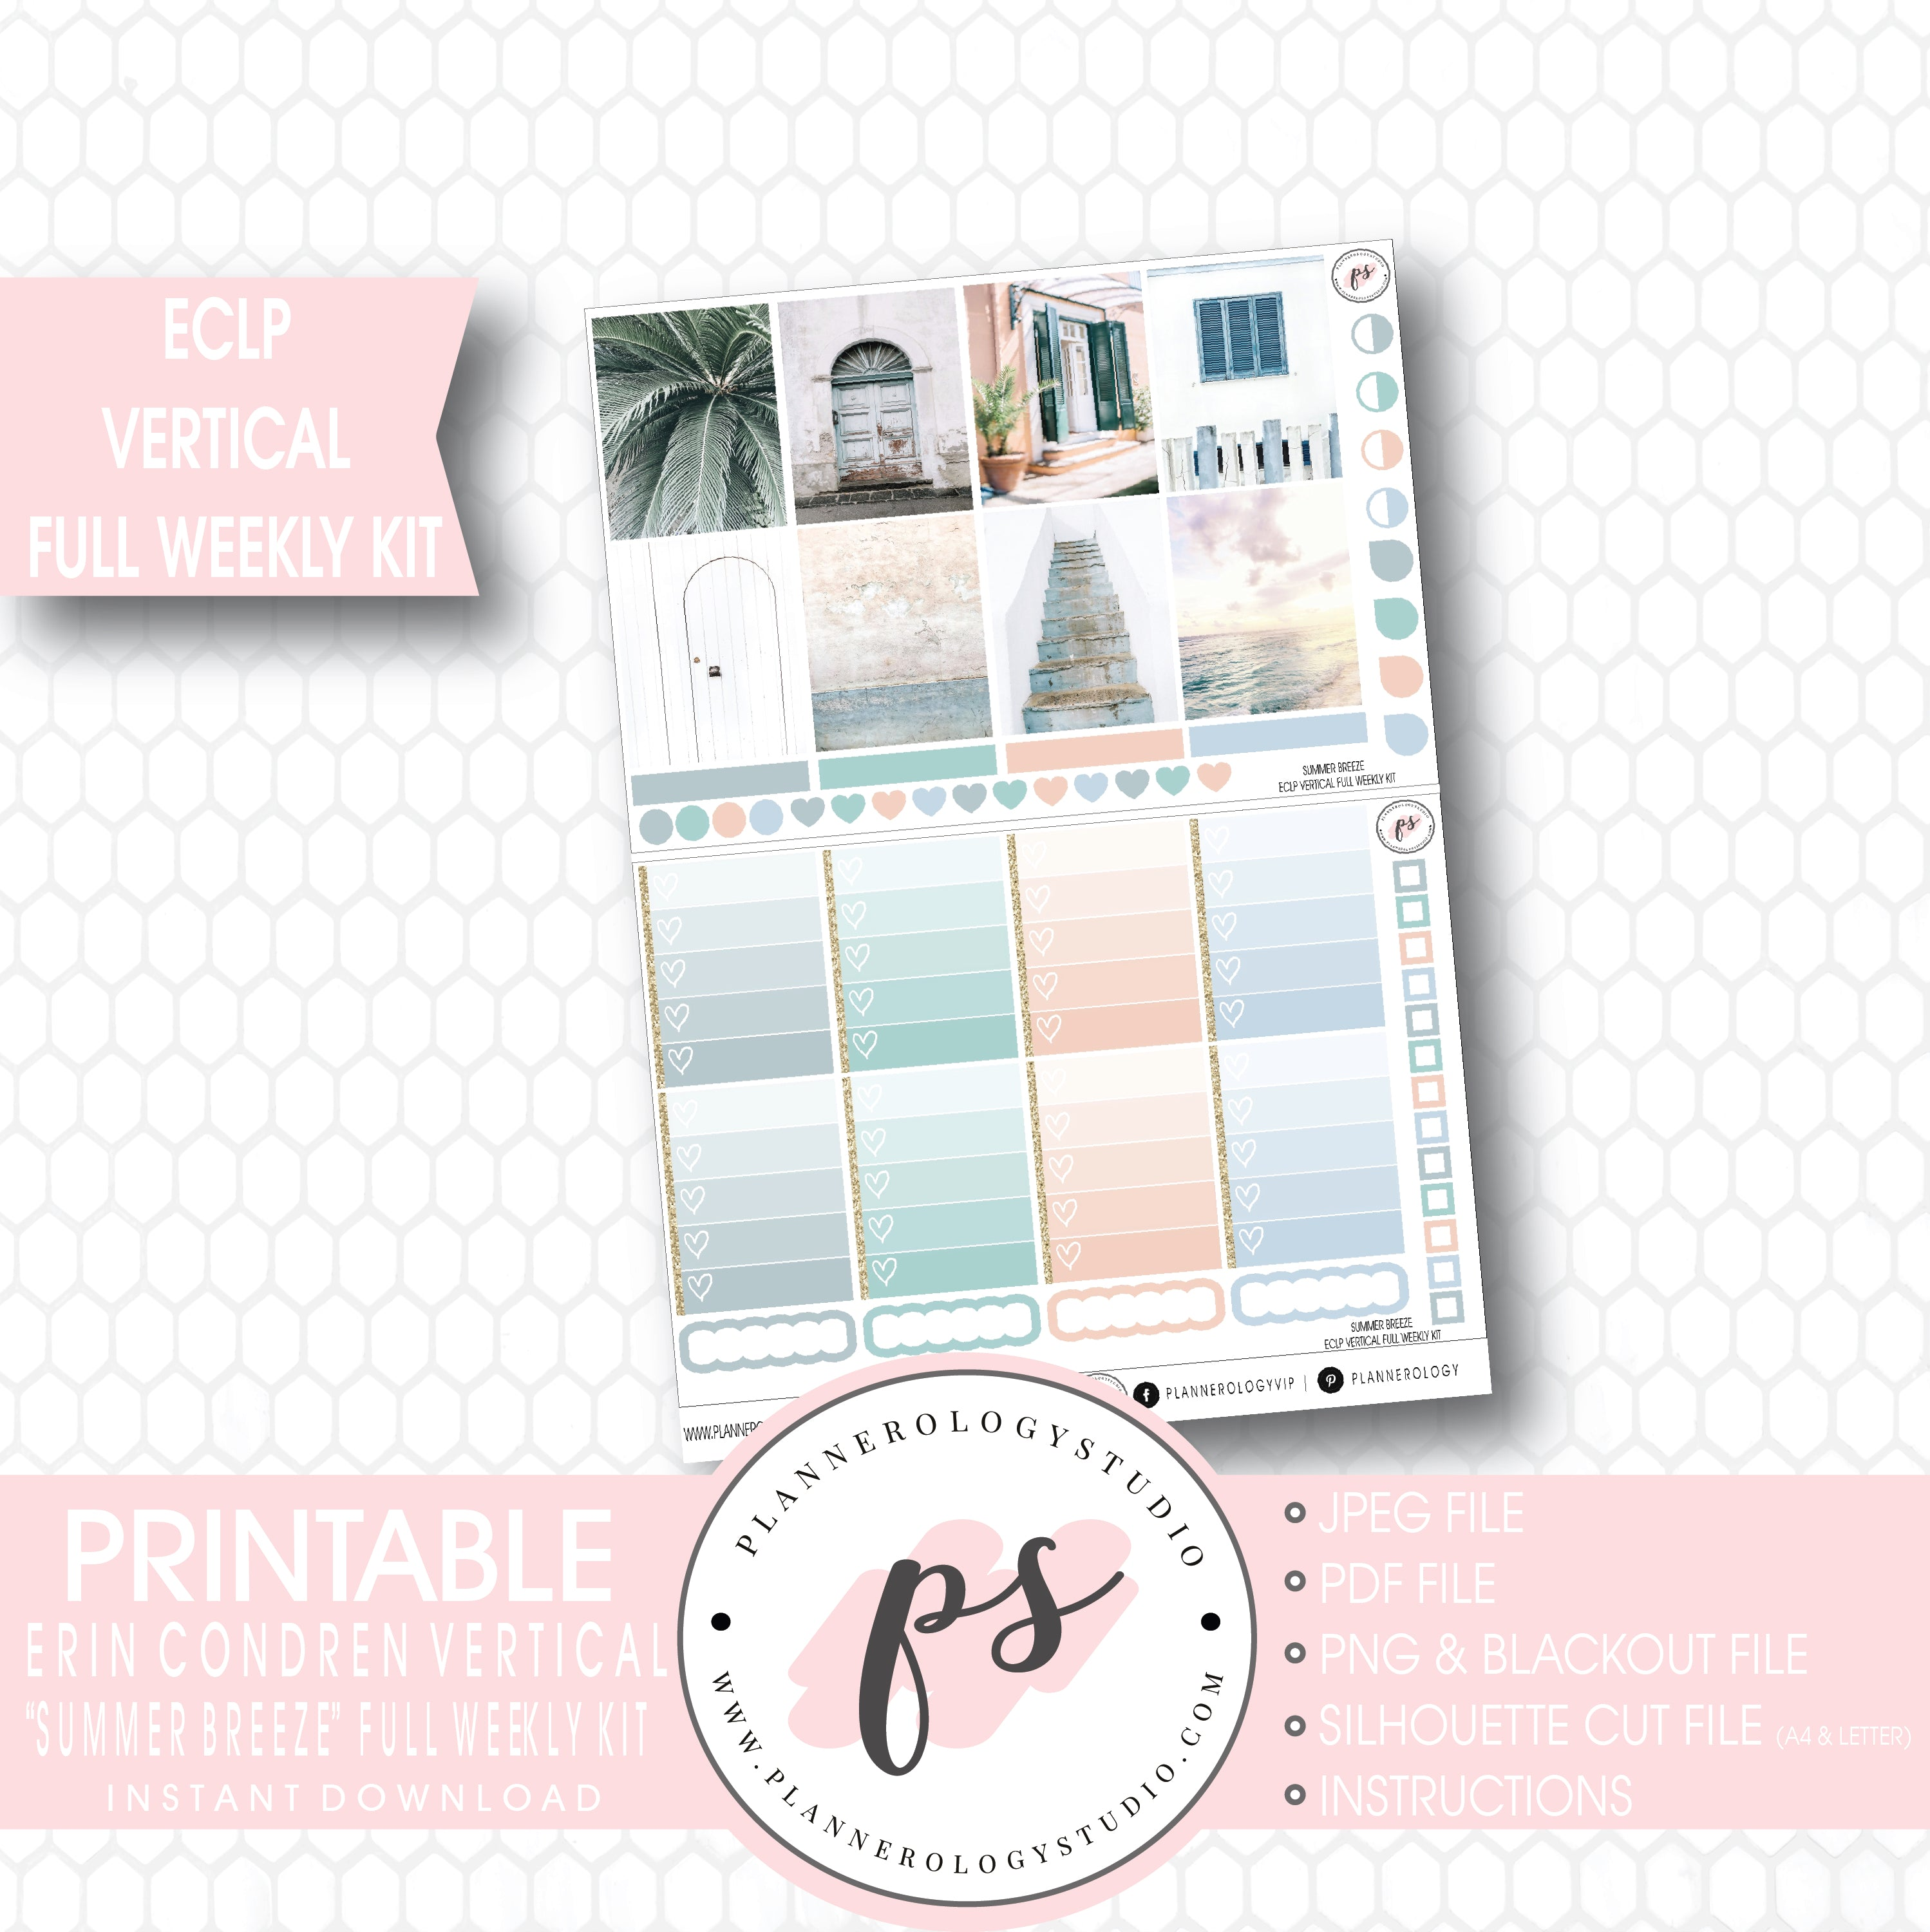 Summer Breeze Stock Photo Full Weekly Kit Printable Planner Stickers For Use With ECLP Vertical